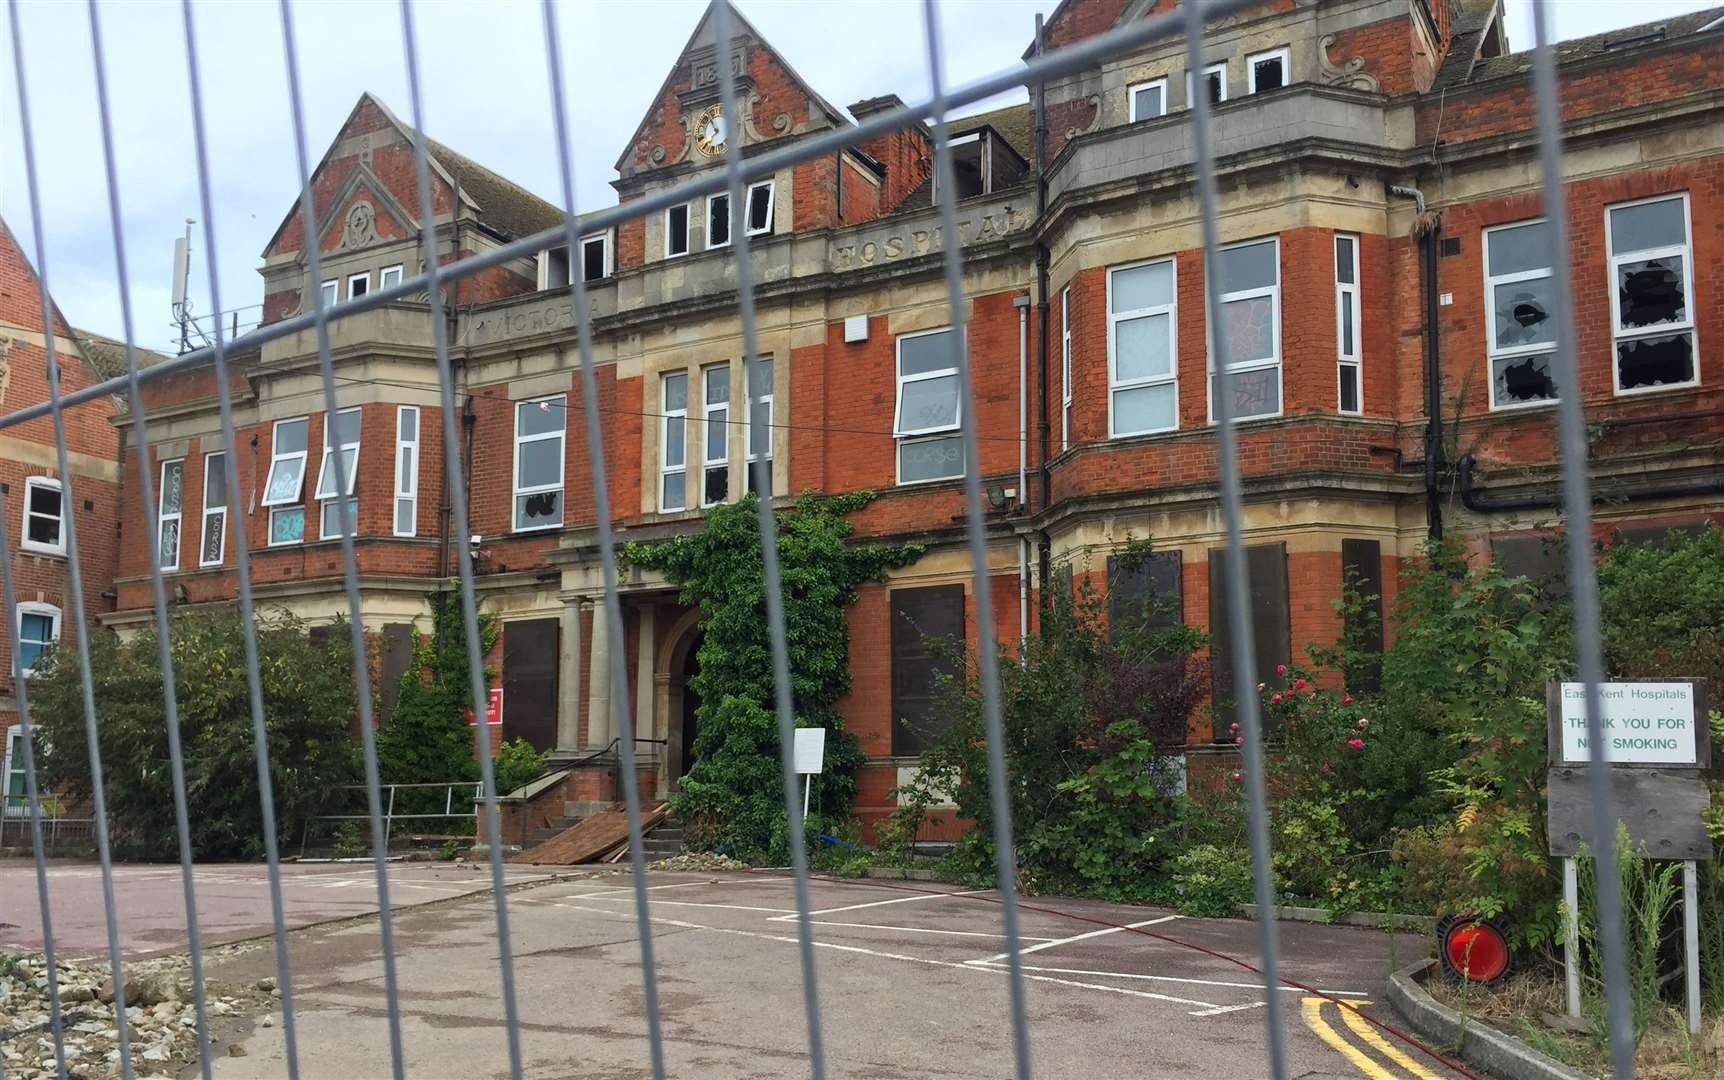 The Royal Victoria Hospital has been empty for years